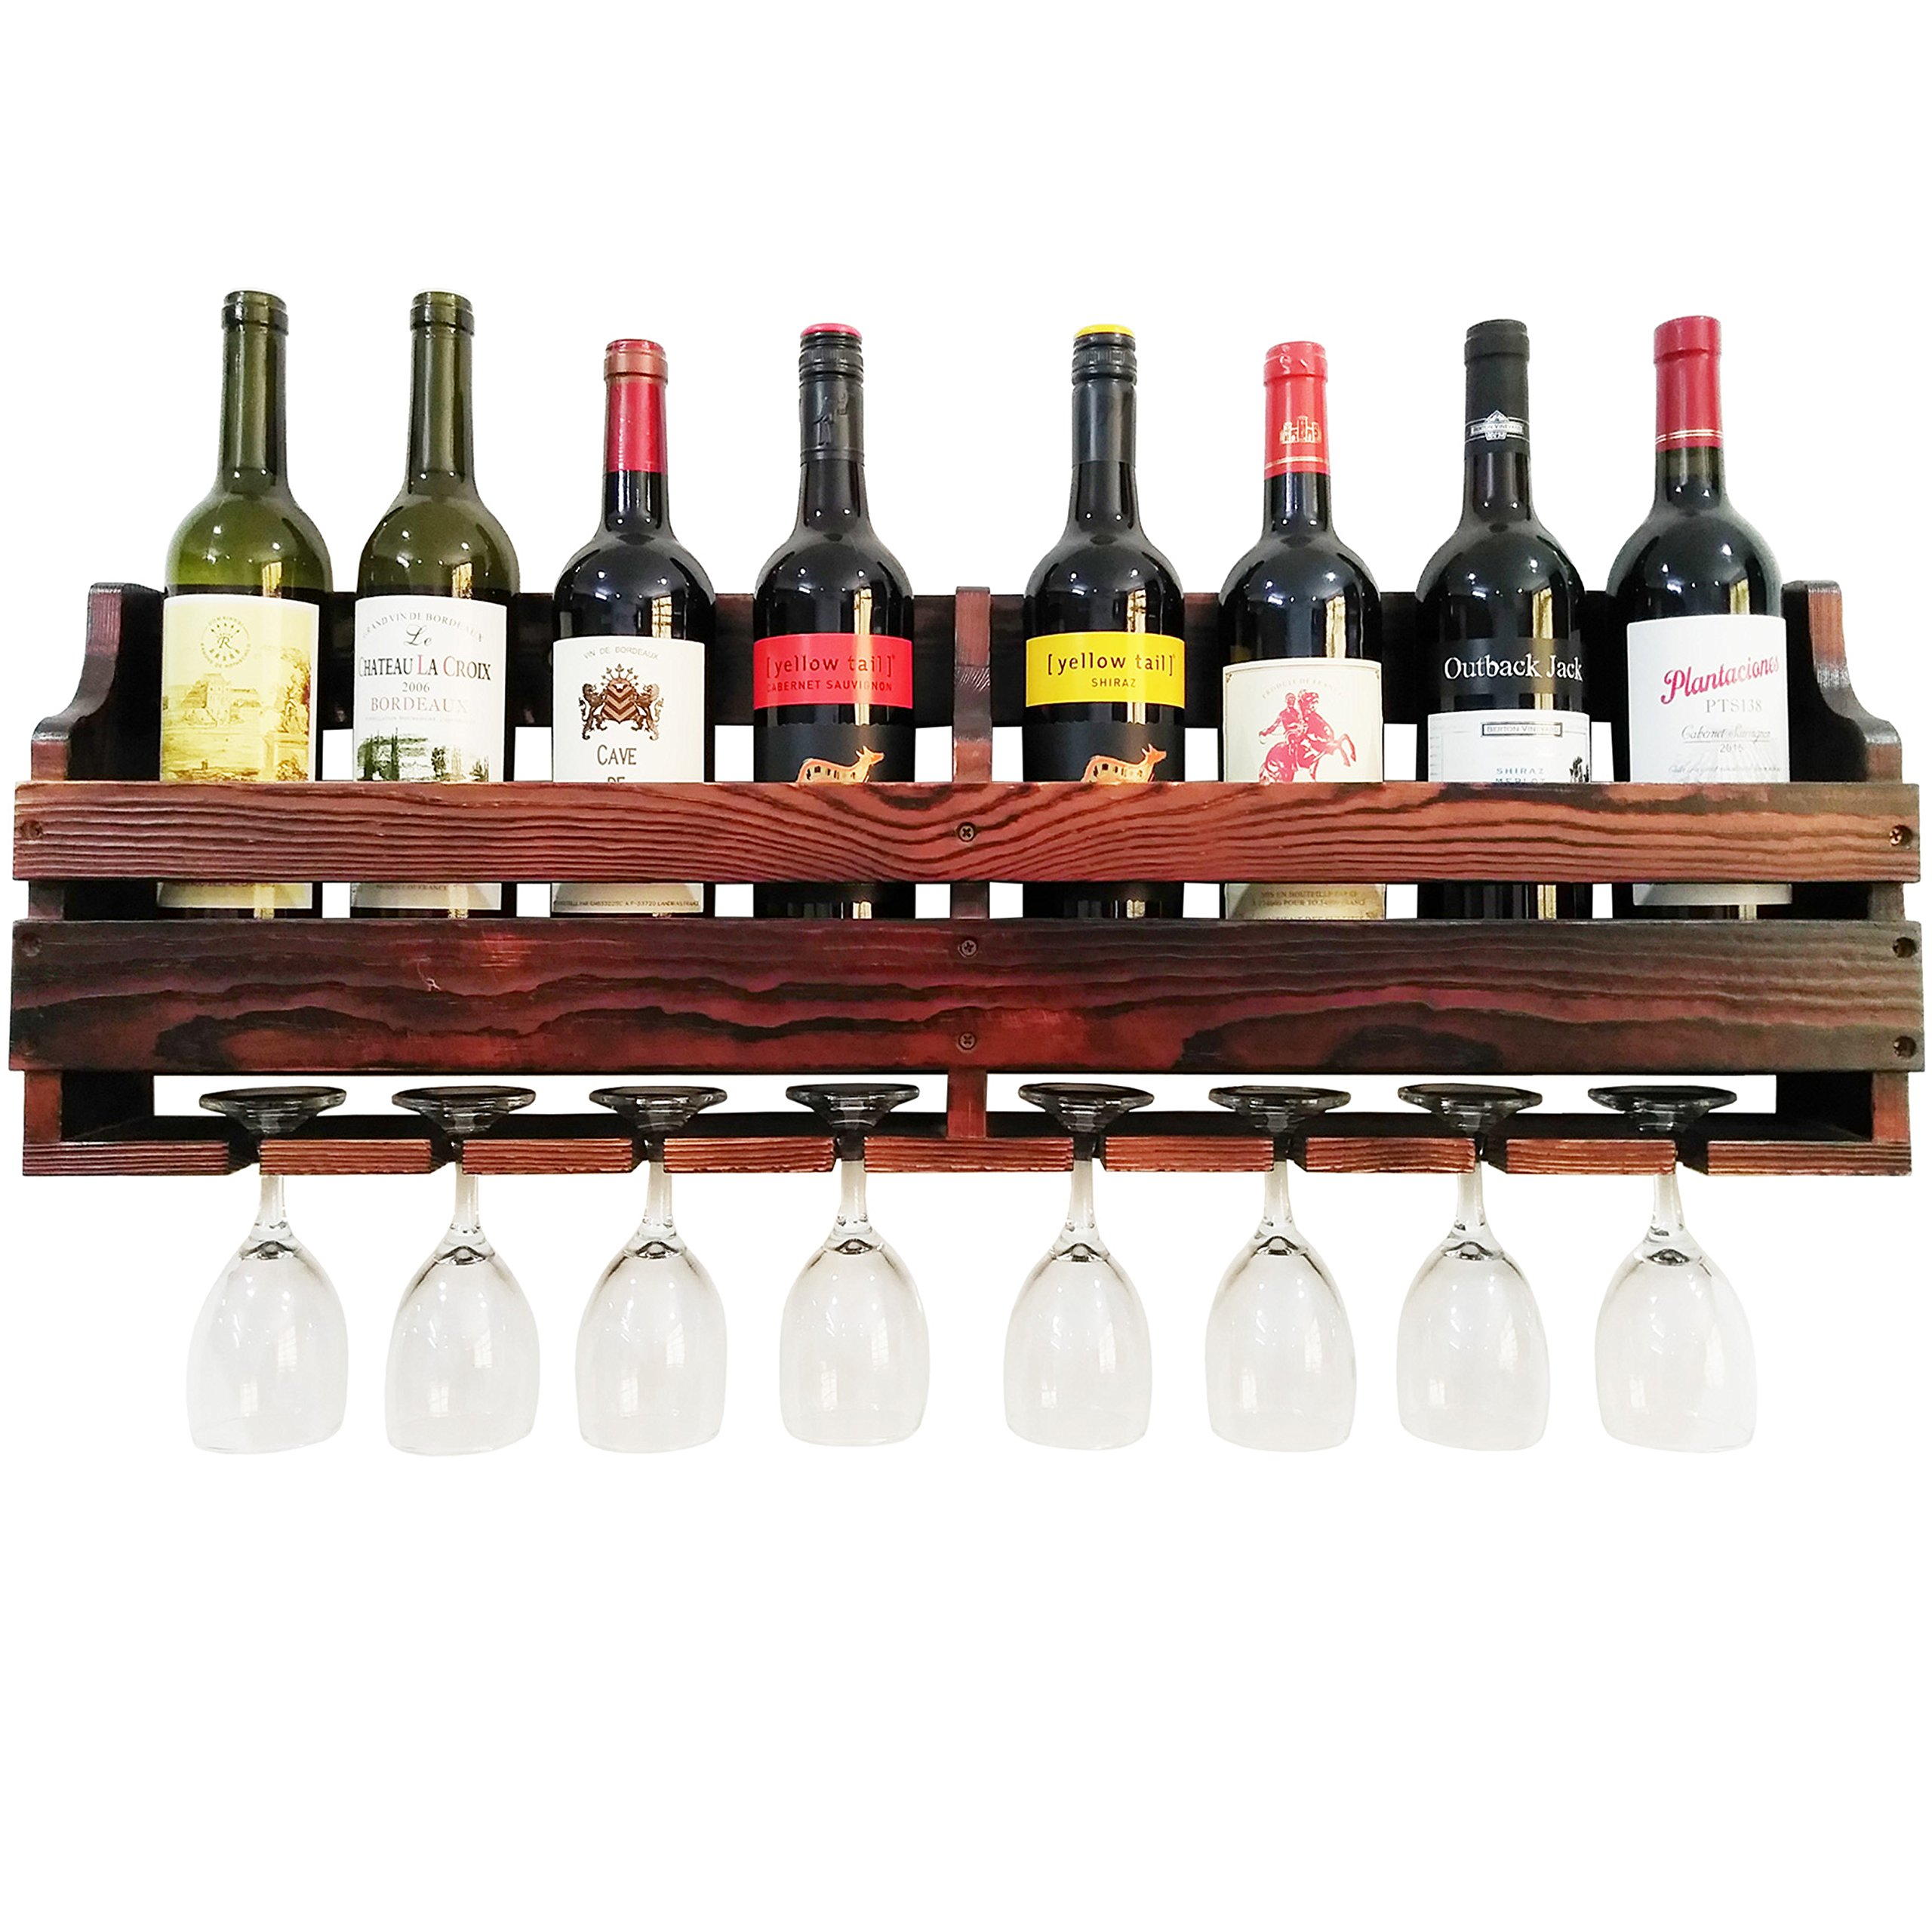 Tuorui Wine Rack Wall Mountedwine Glass Wine Bottle Display Rack